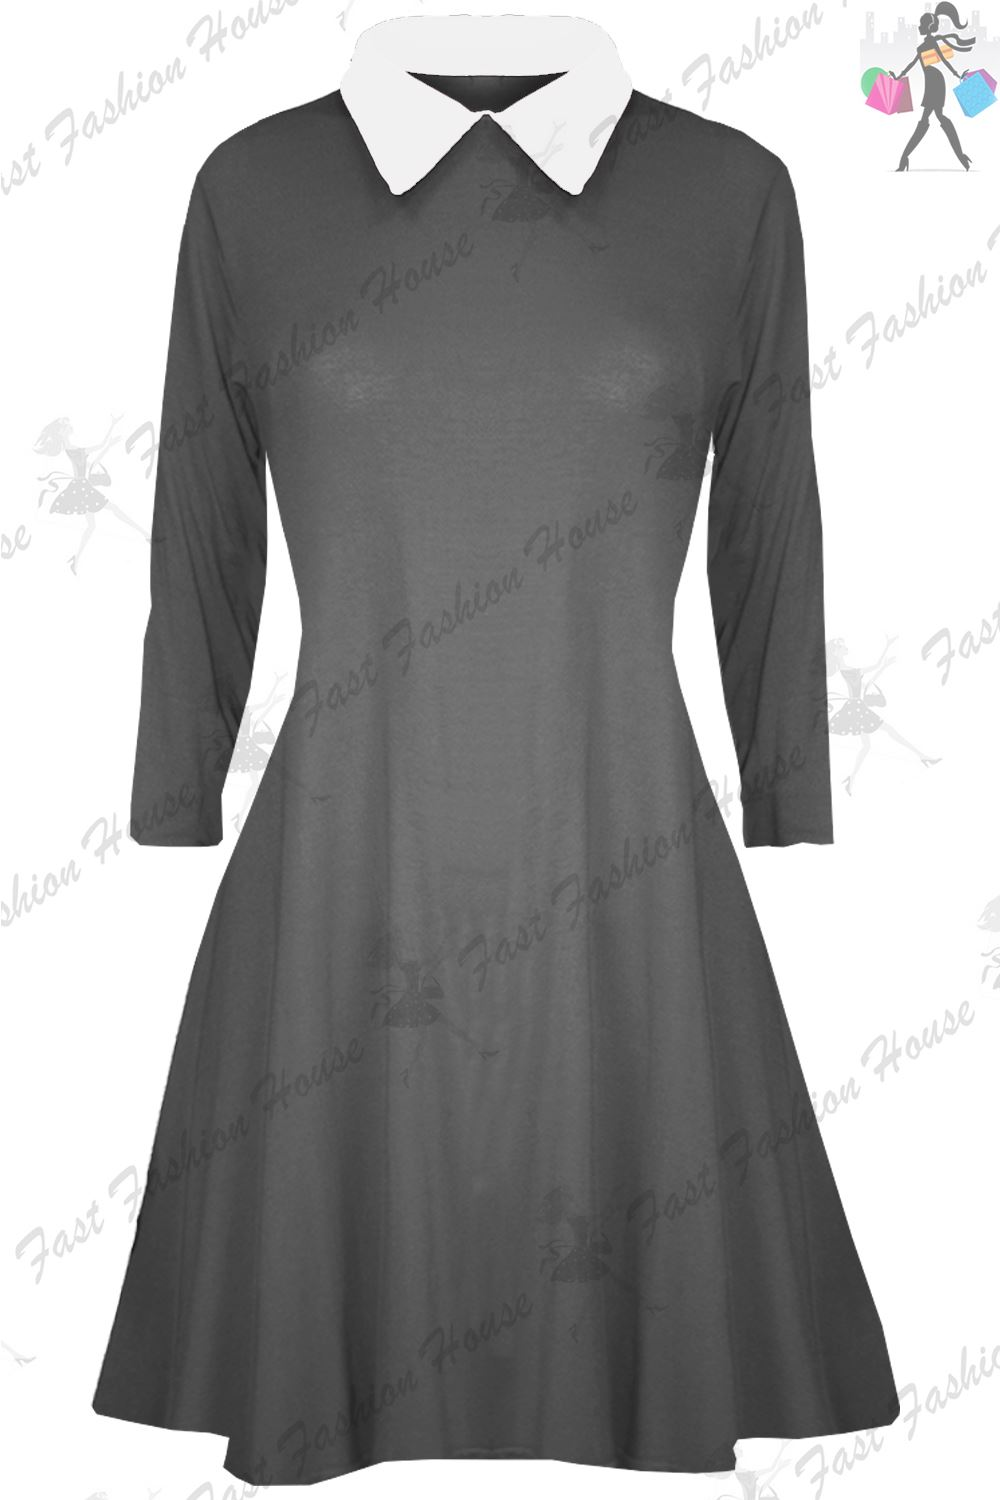 Black dress with white peter pan collar - Womens Swing Dress Ladies Peter Pan Collar Long